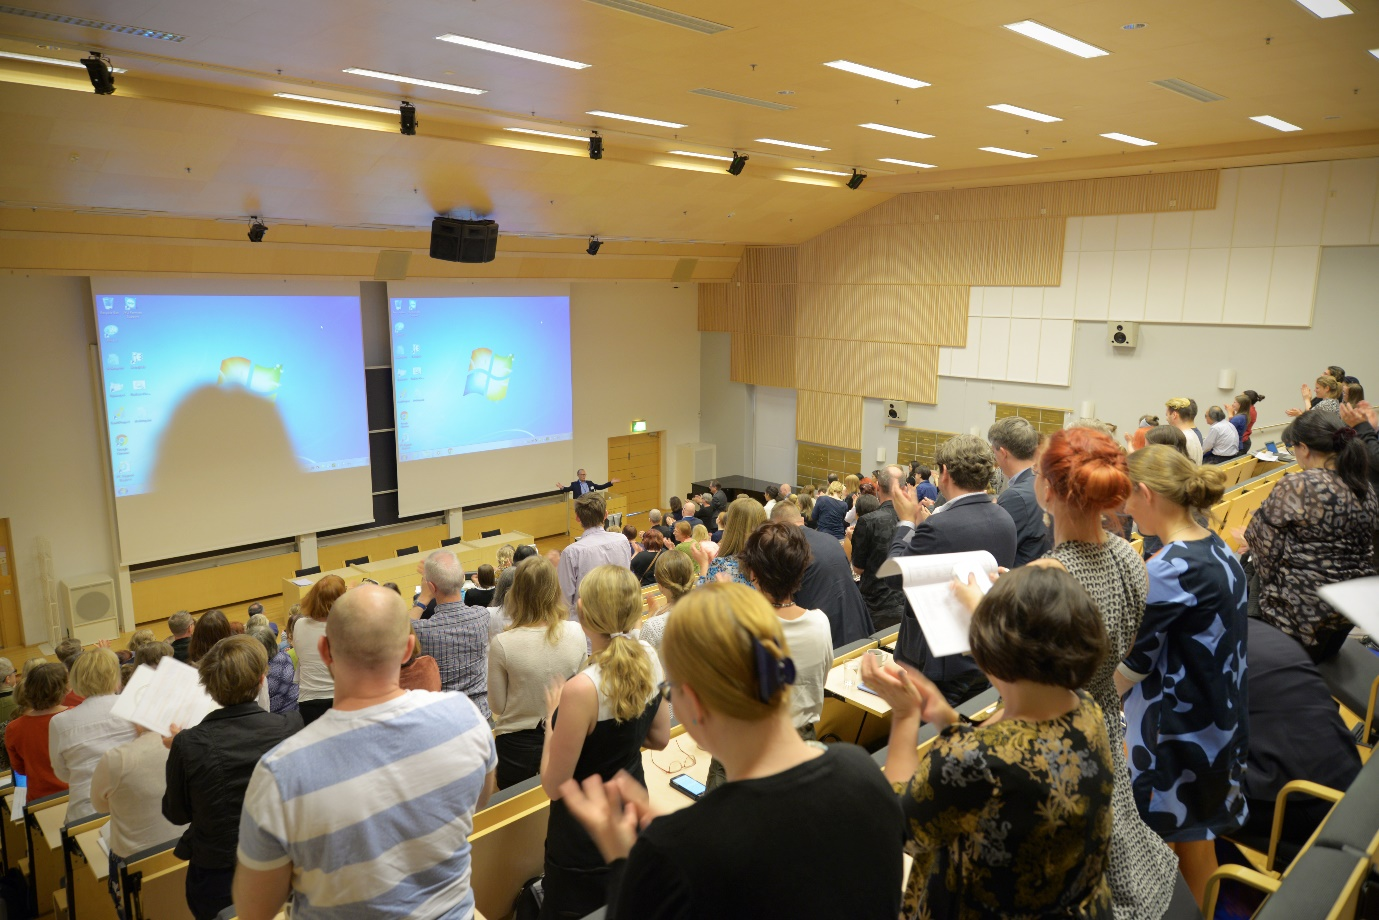 JYU tradition of a standing ovation was practiced after every presentation